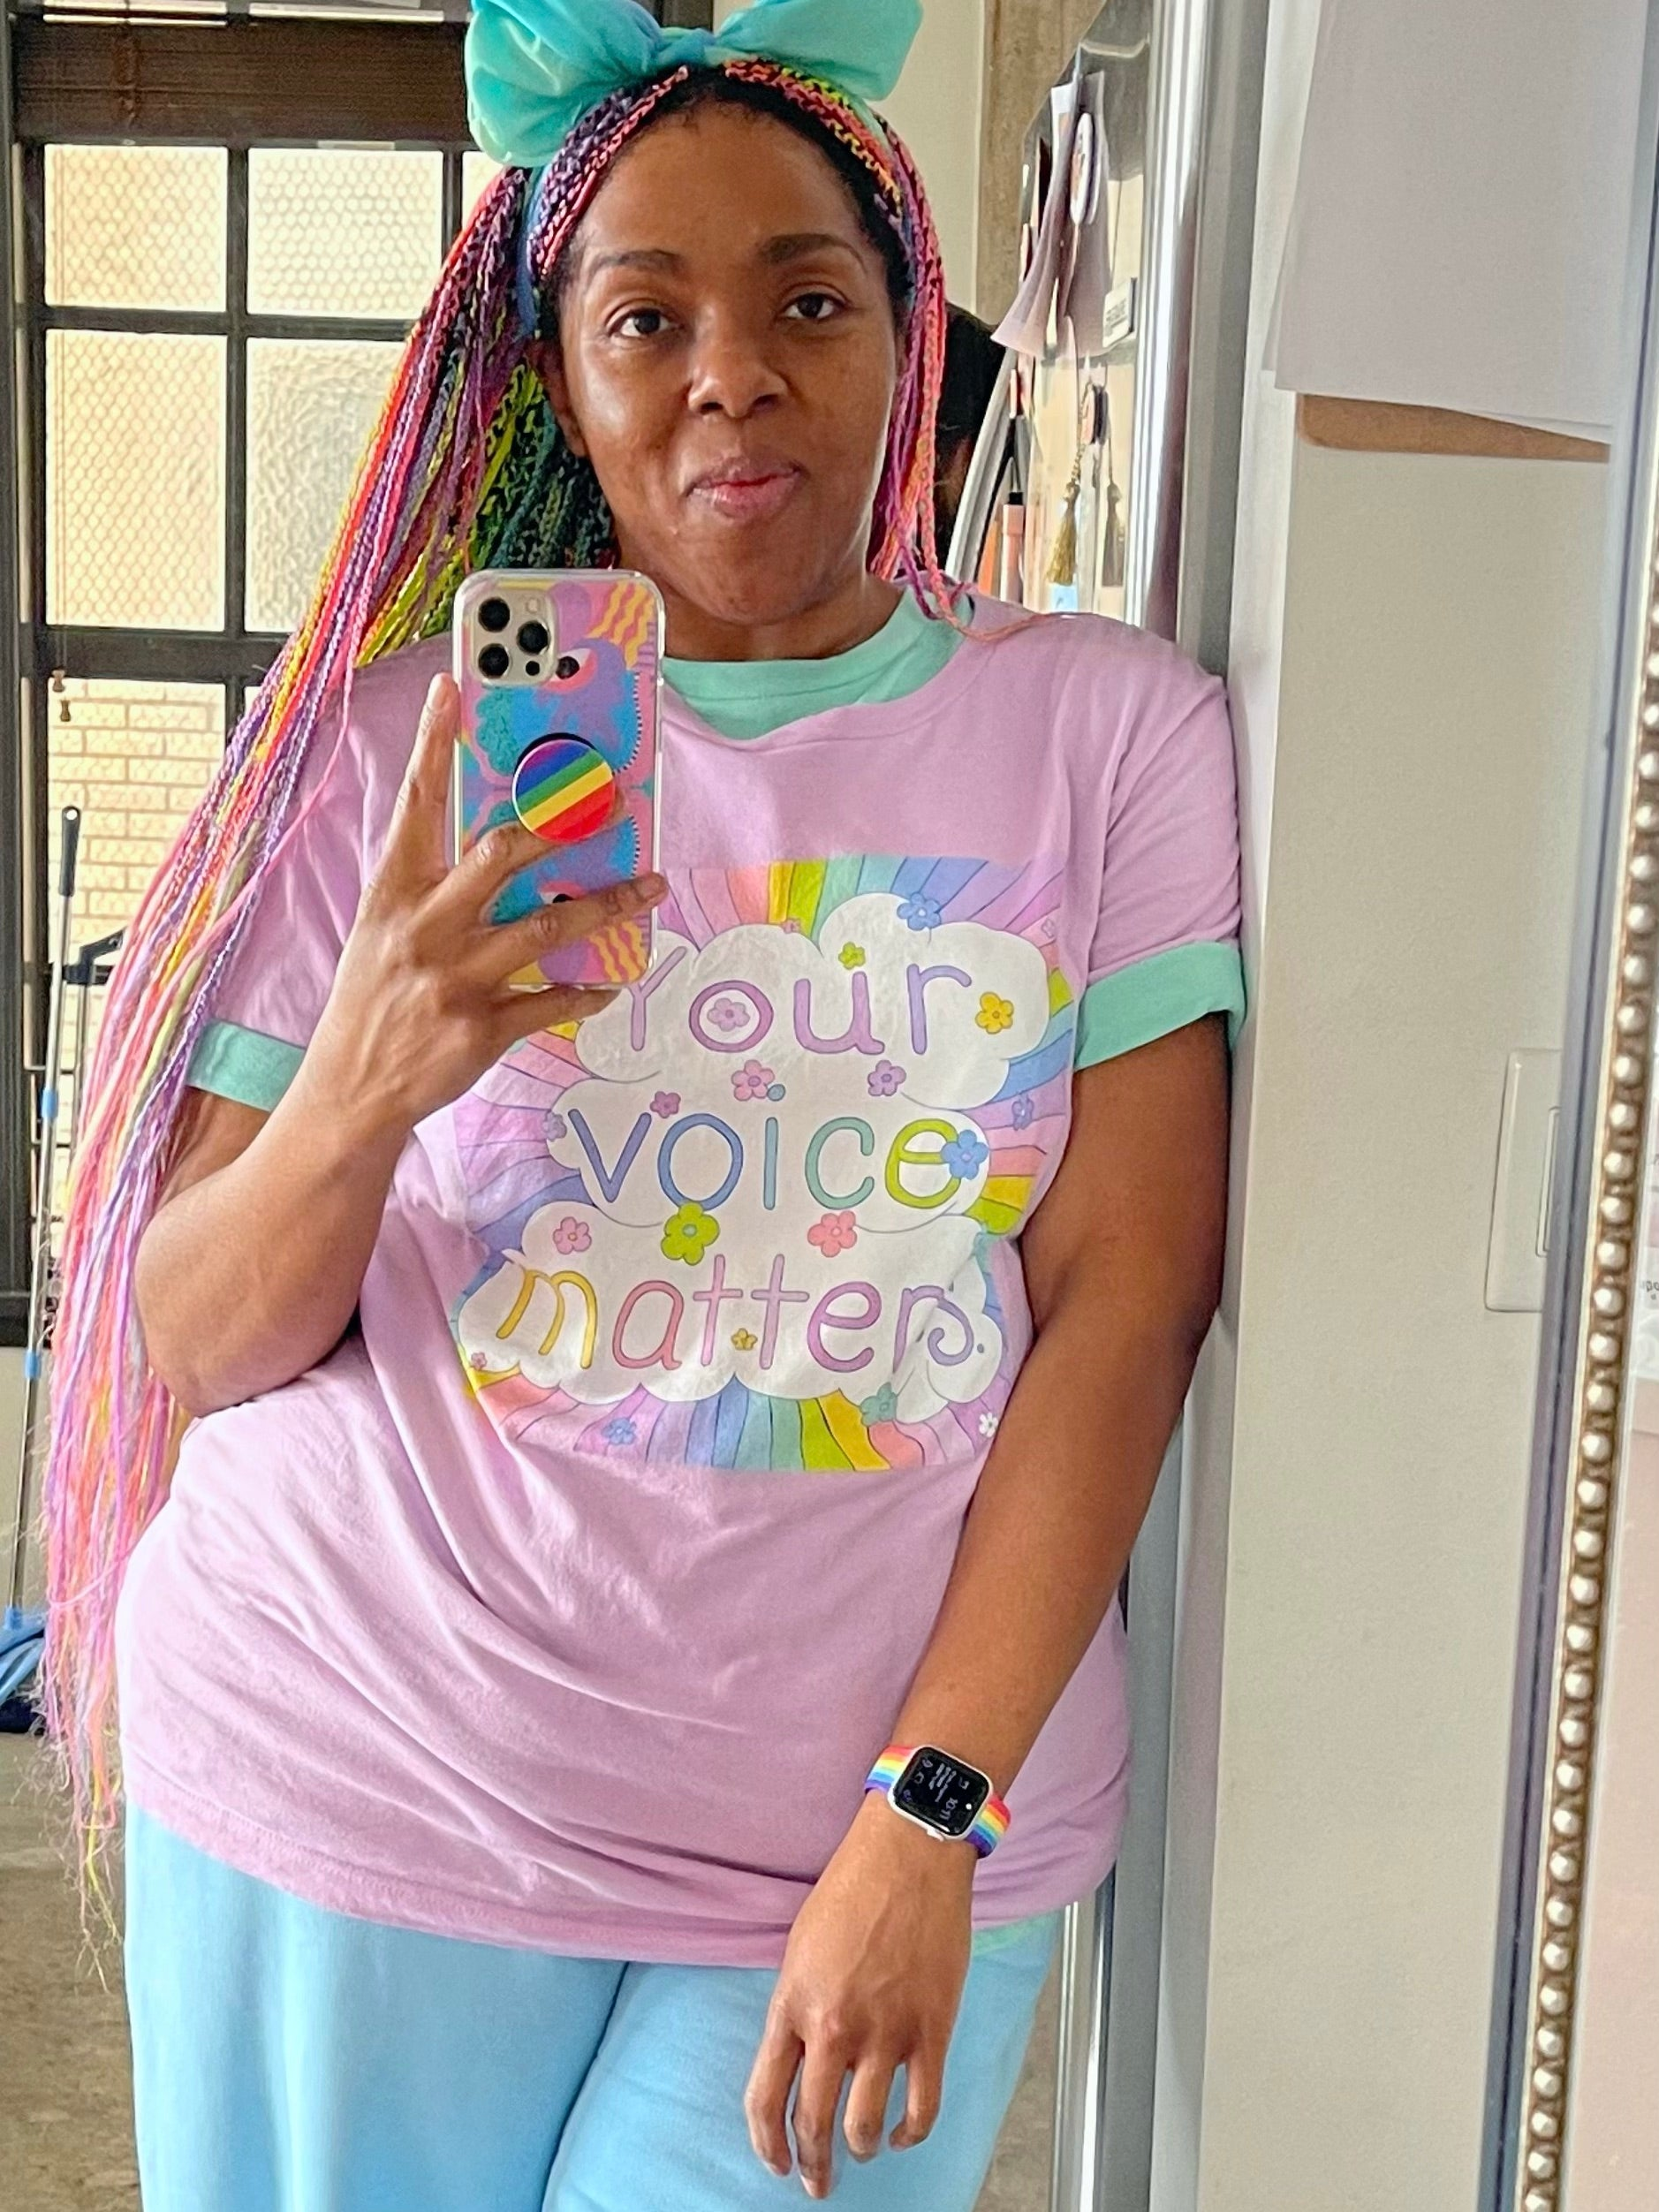 Your Voice Matters (Shirt)